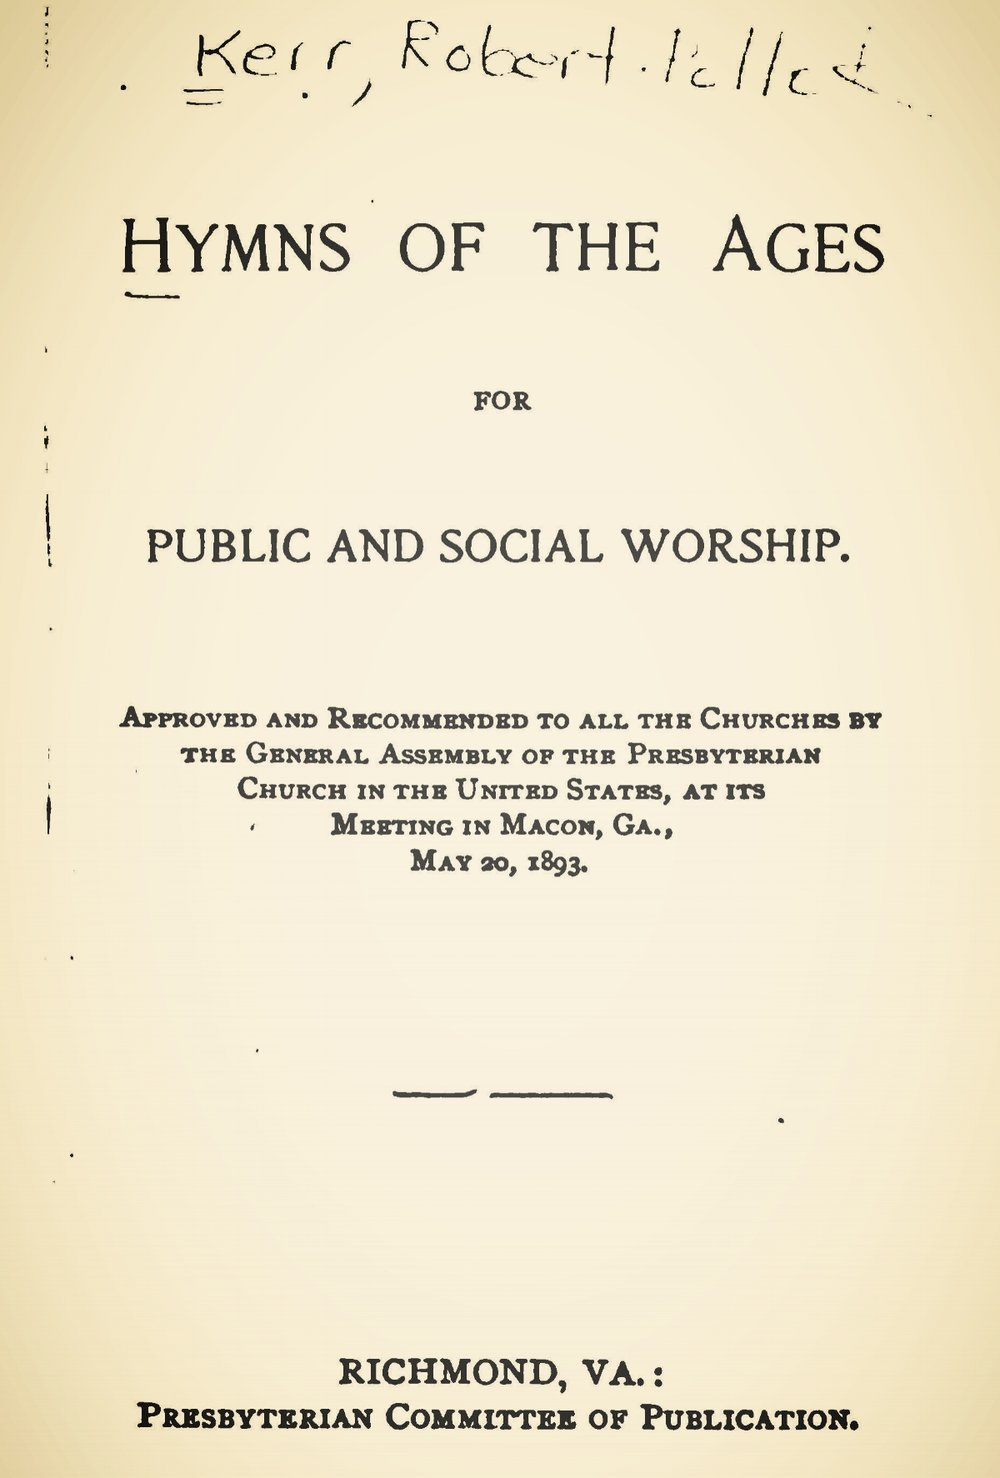 Kerr, Robert Pollock, Hymns of the Ages for Public and Social Worship Title Page.jpg